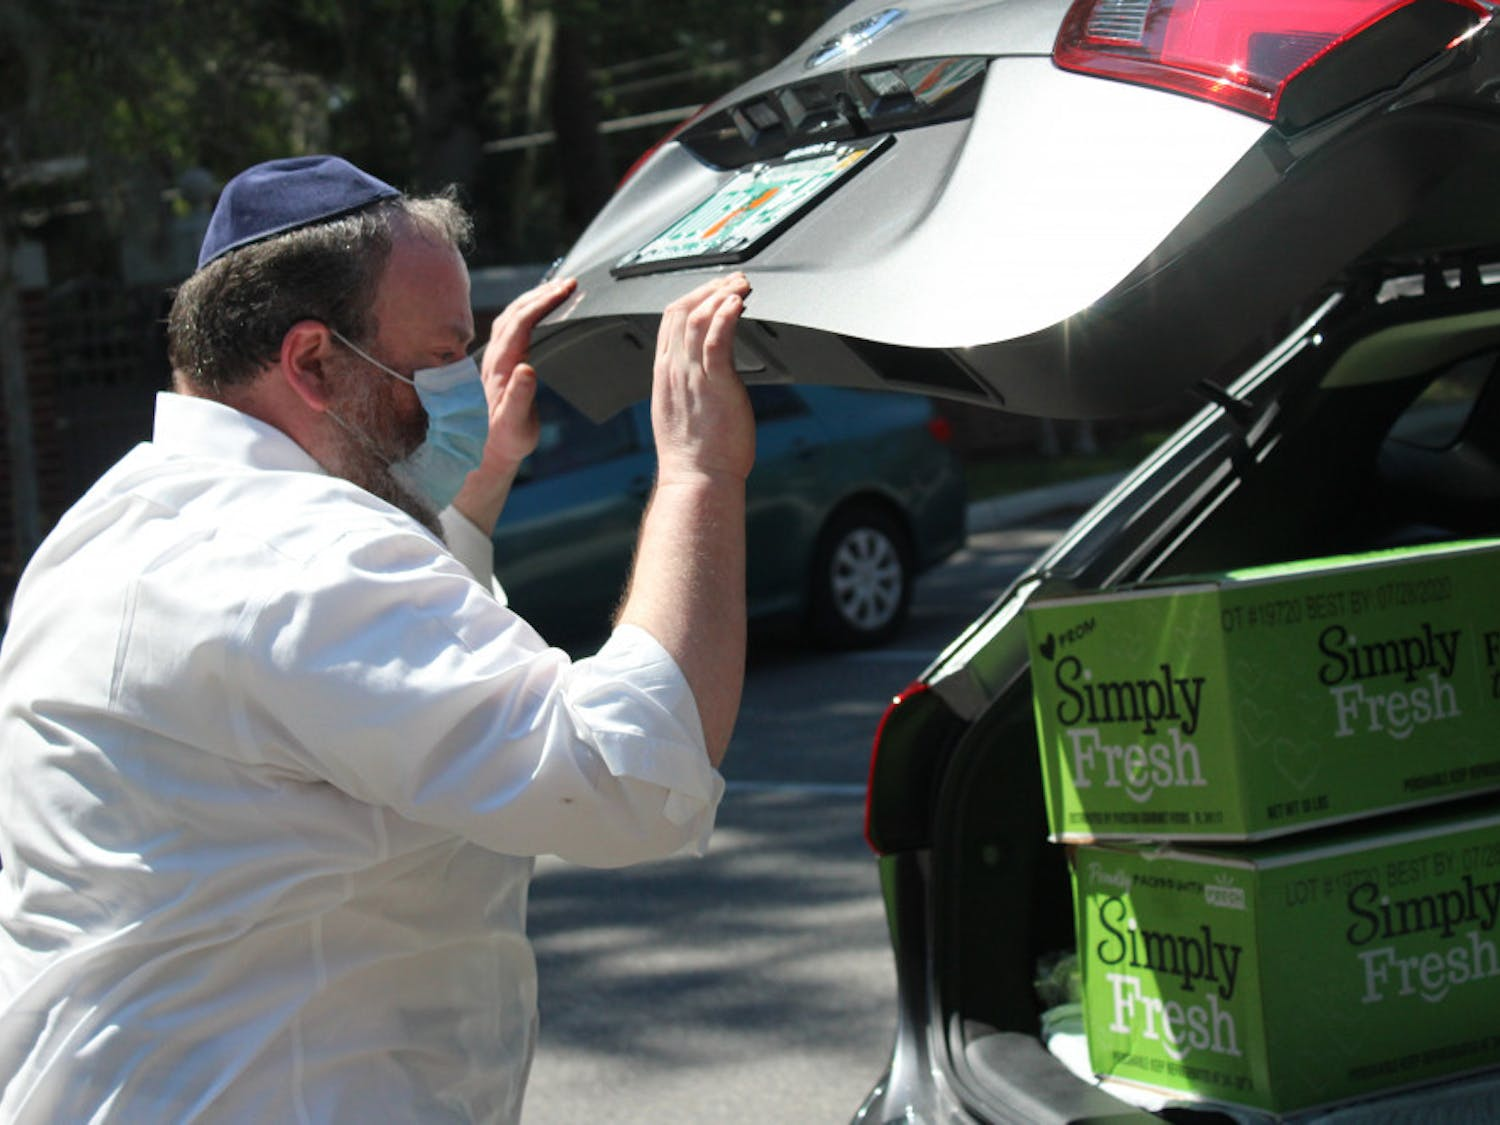 The Lubavitch-Chabad Jewish Student & Community Center hosted a free food distribution event July 16. The food drive was held as COVID-19 numbers spike in the county and state as a way to support homebound individuals and families during the pandemic.